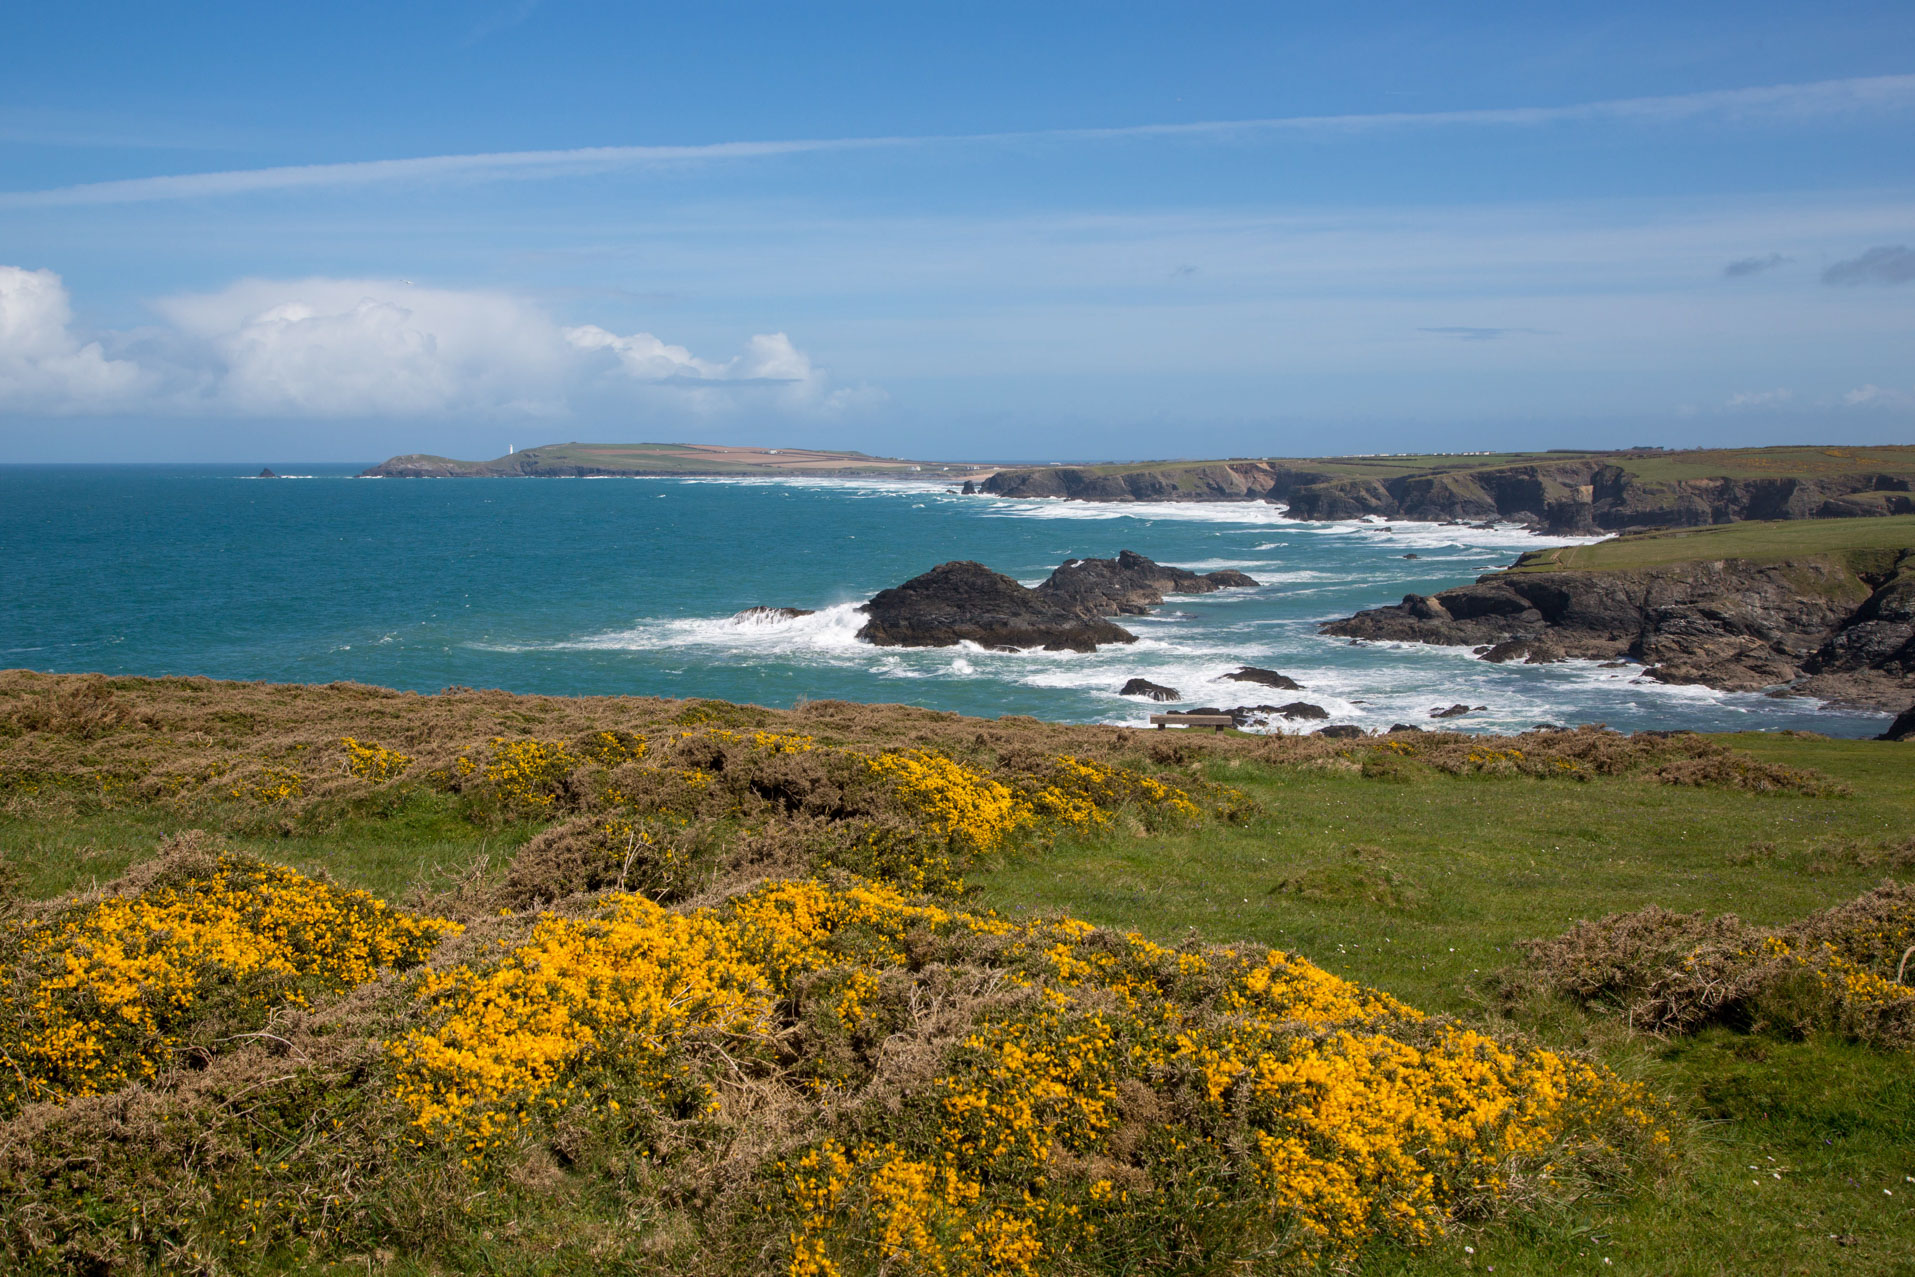 View across the rugged North Cornwall coastline towards Trevose Head close the Bedruthan Steps